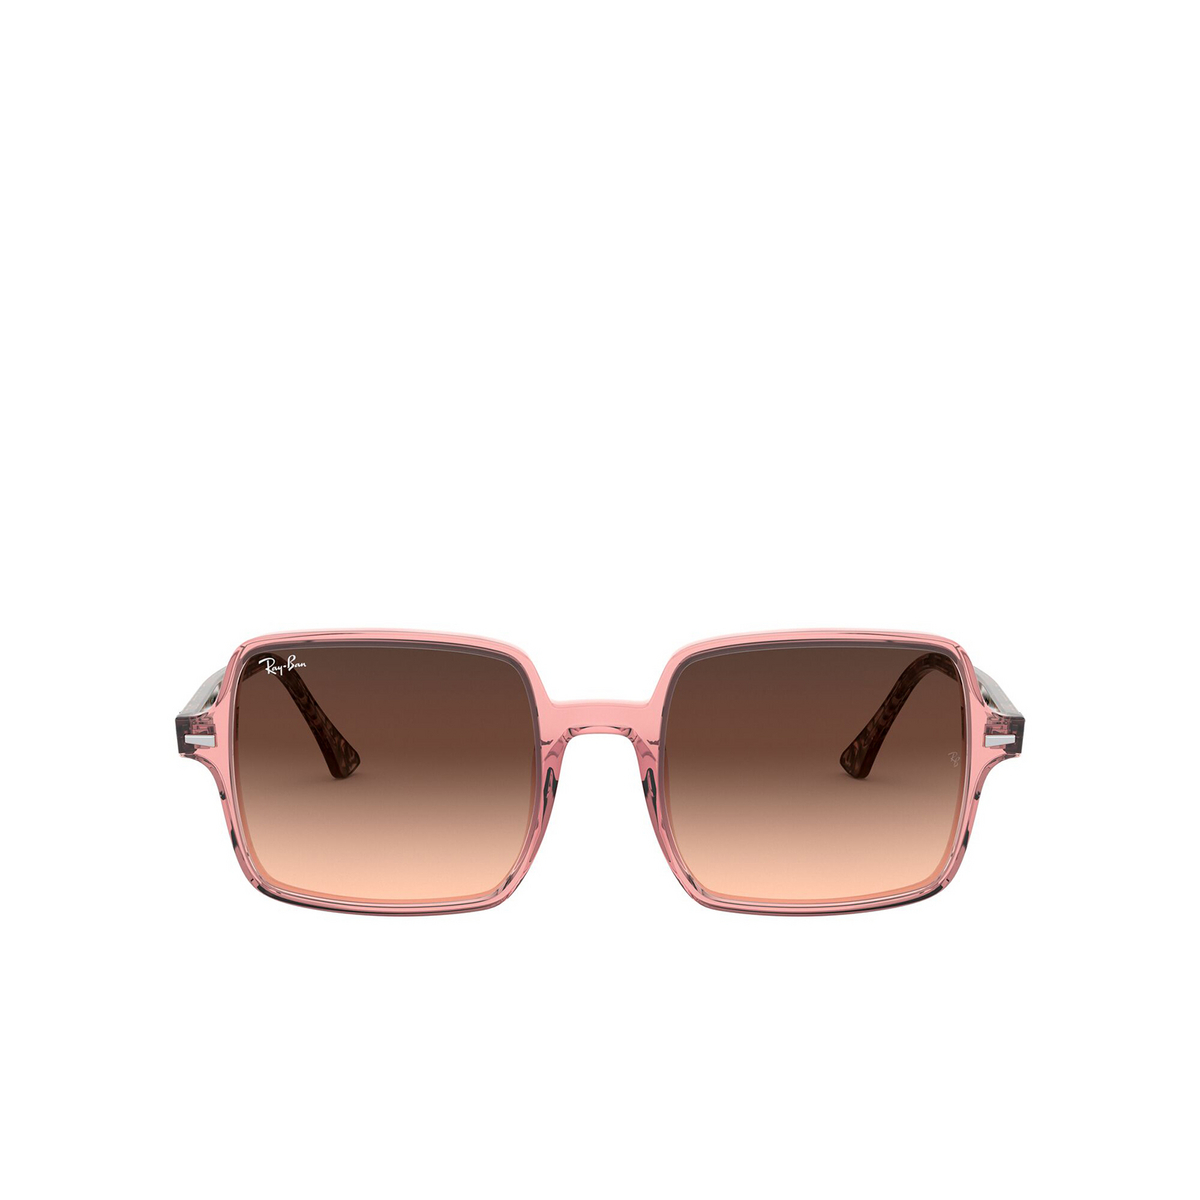 Ray-Ban® Square Sunglasses: Square Ii RB1973 color Transparent Pink 1282A5 - front view.